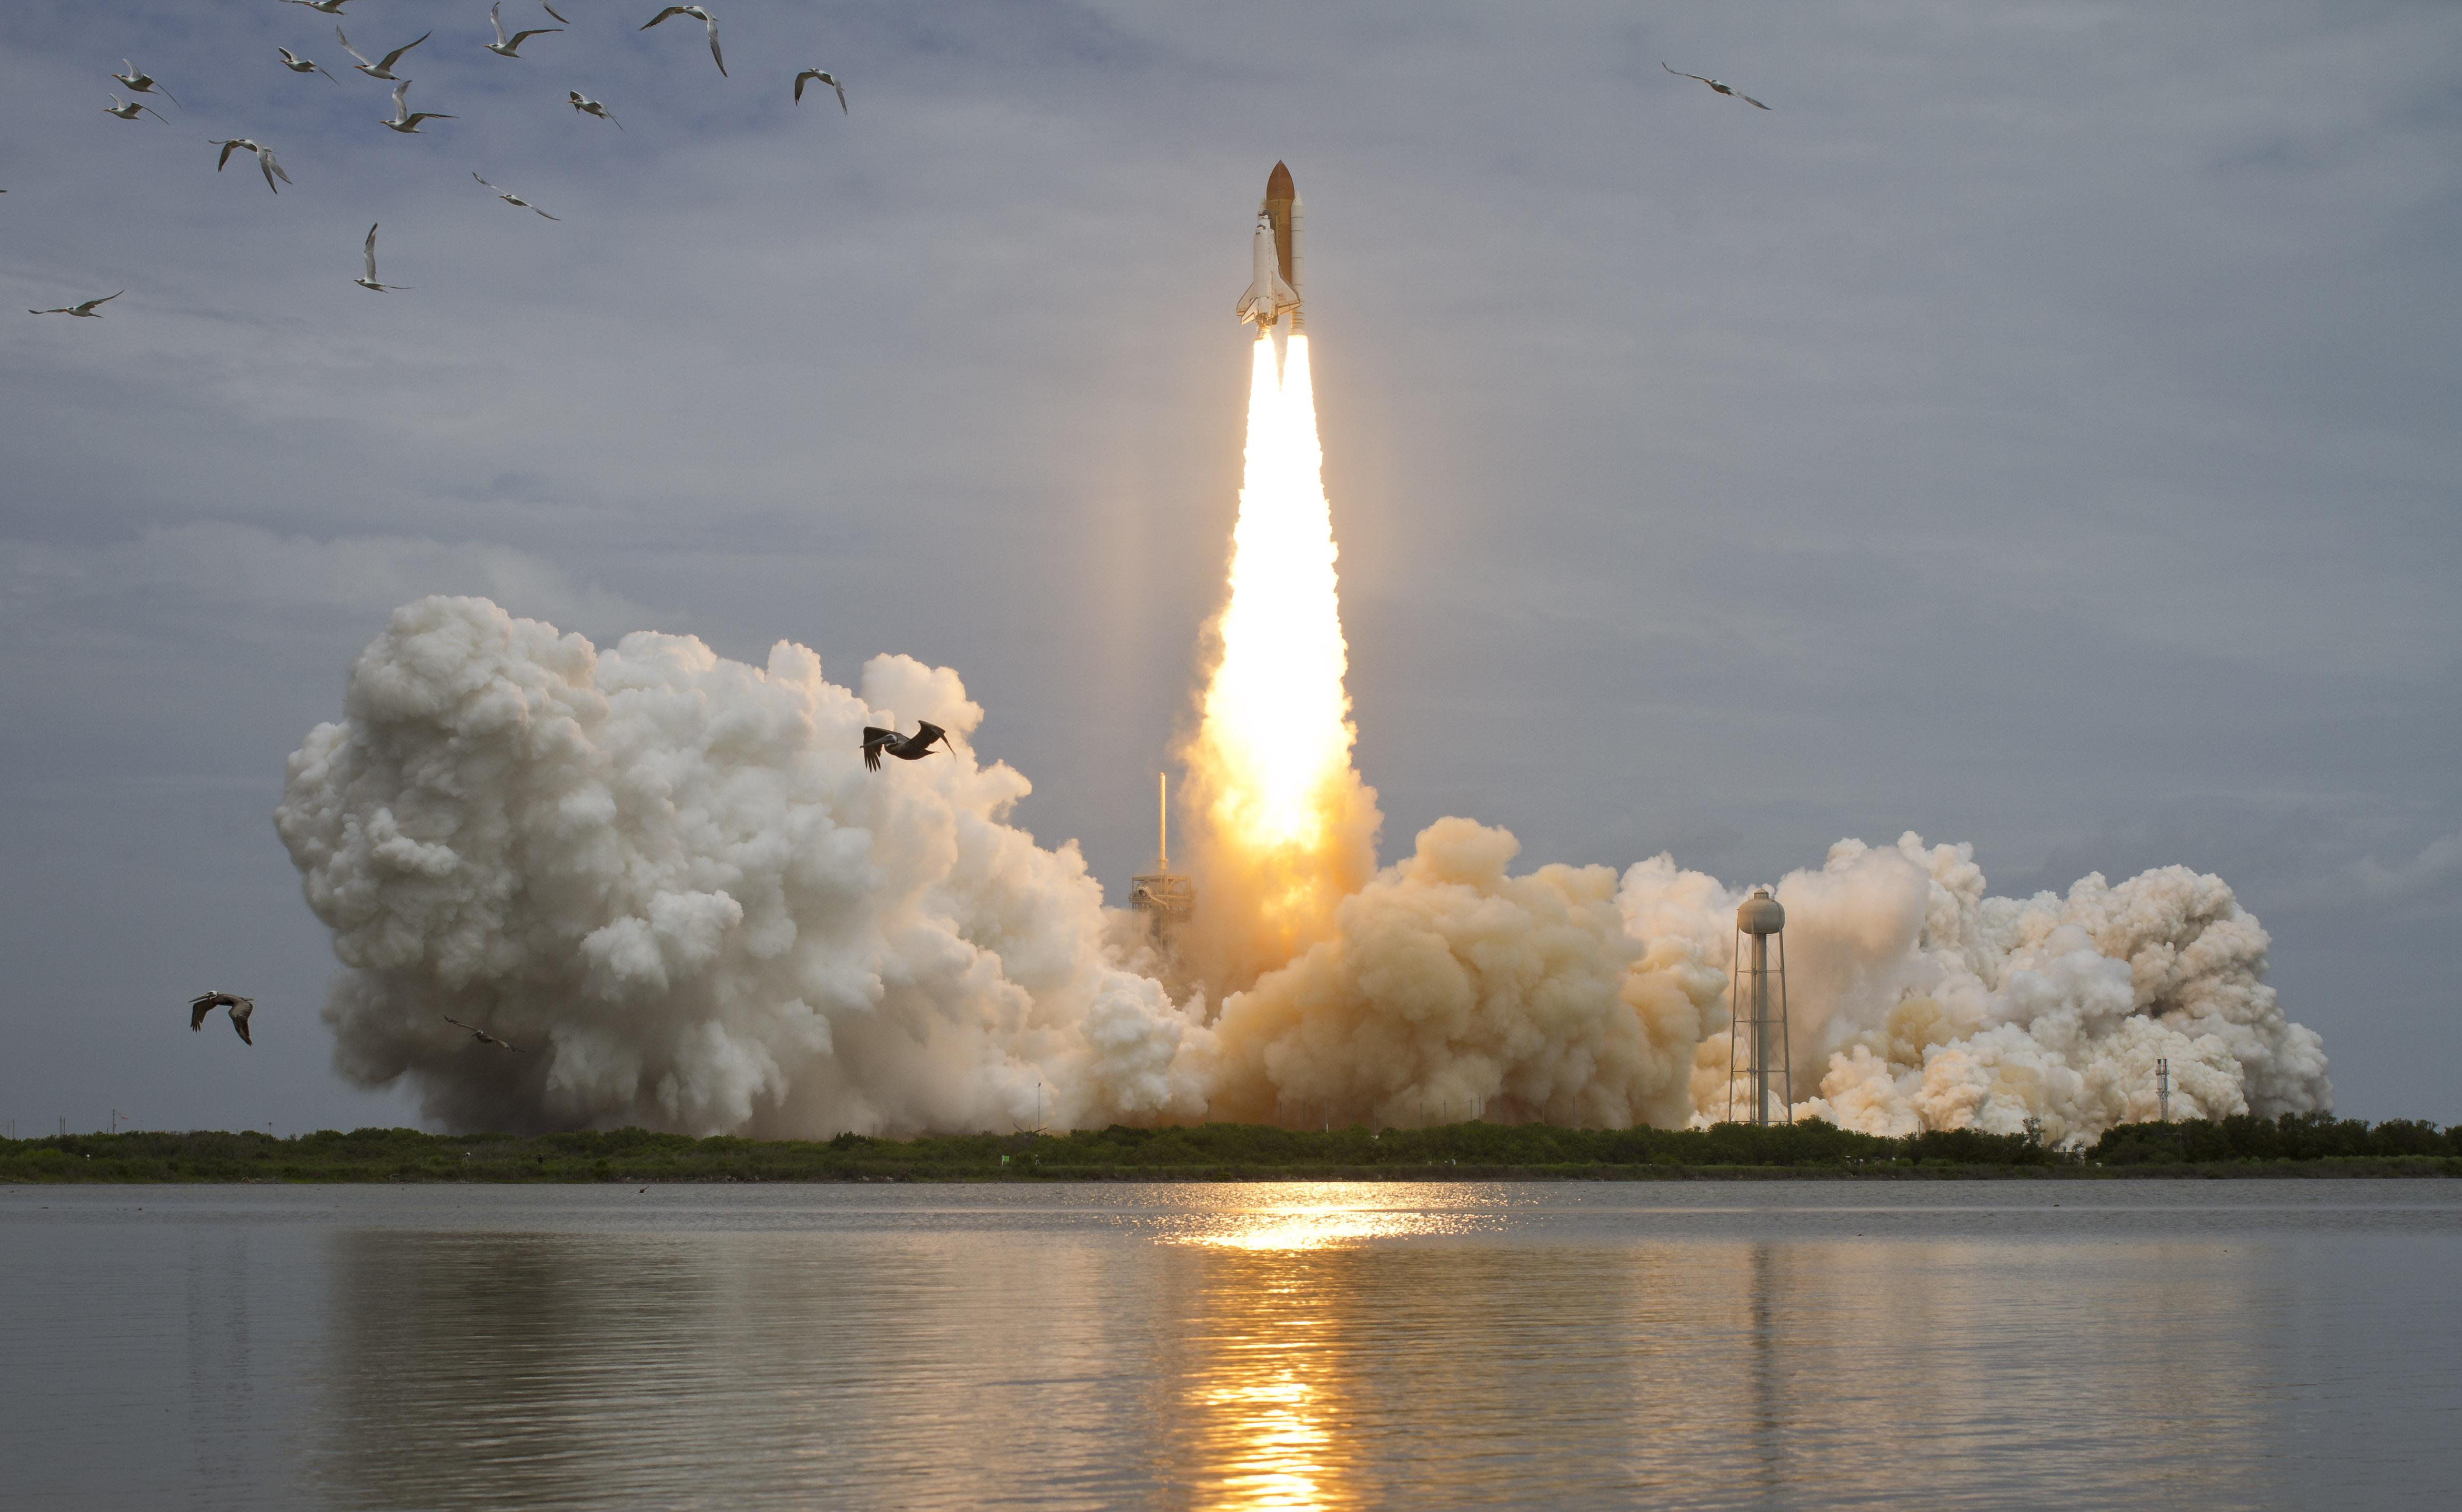 Space in Images - 2011 - 07 - Launch of the Space Shuttle ...